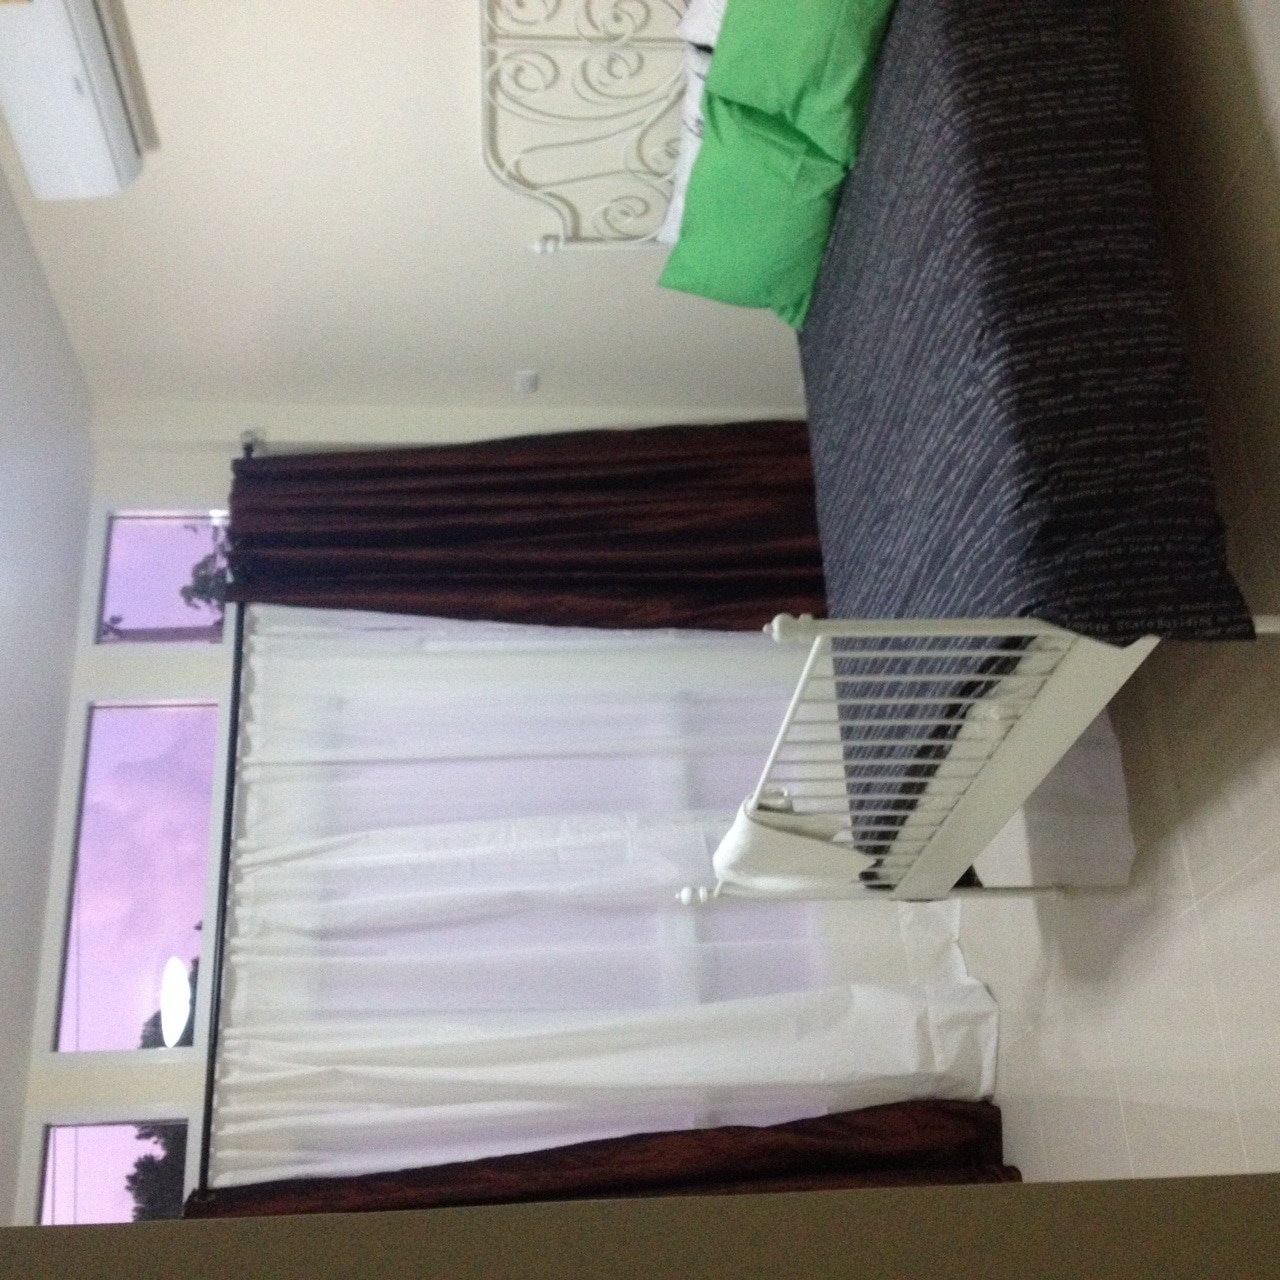 3 bedroom house In THALANG  for rent fully furnished fully aircon FIRST LET 18000 per month